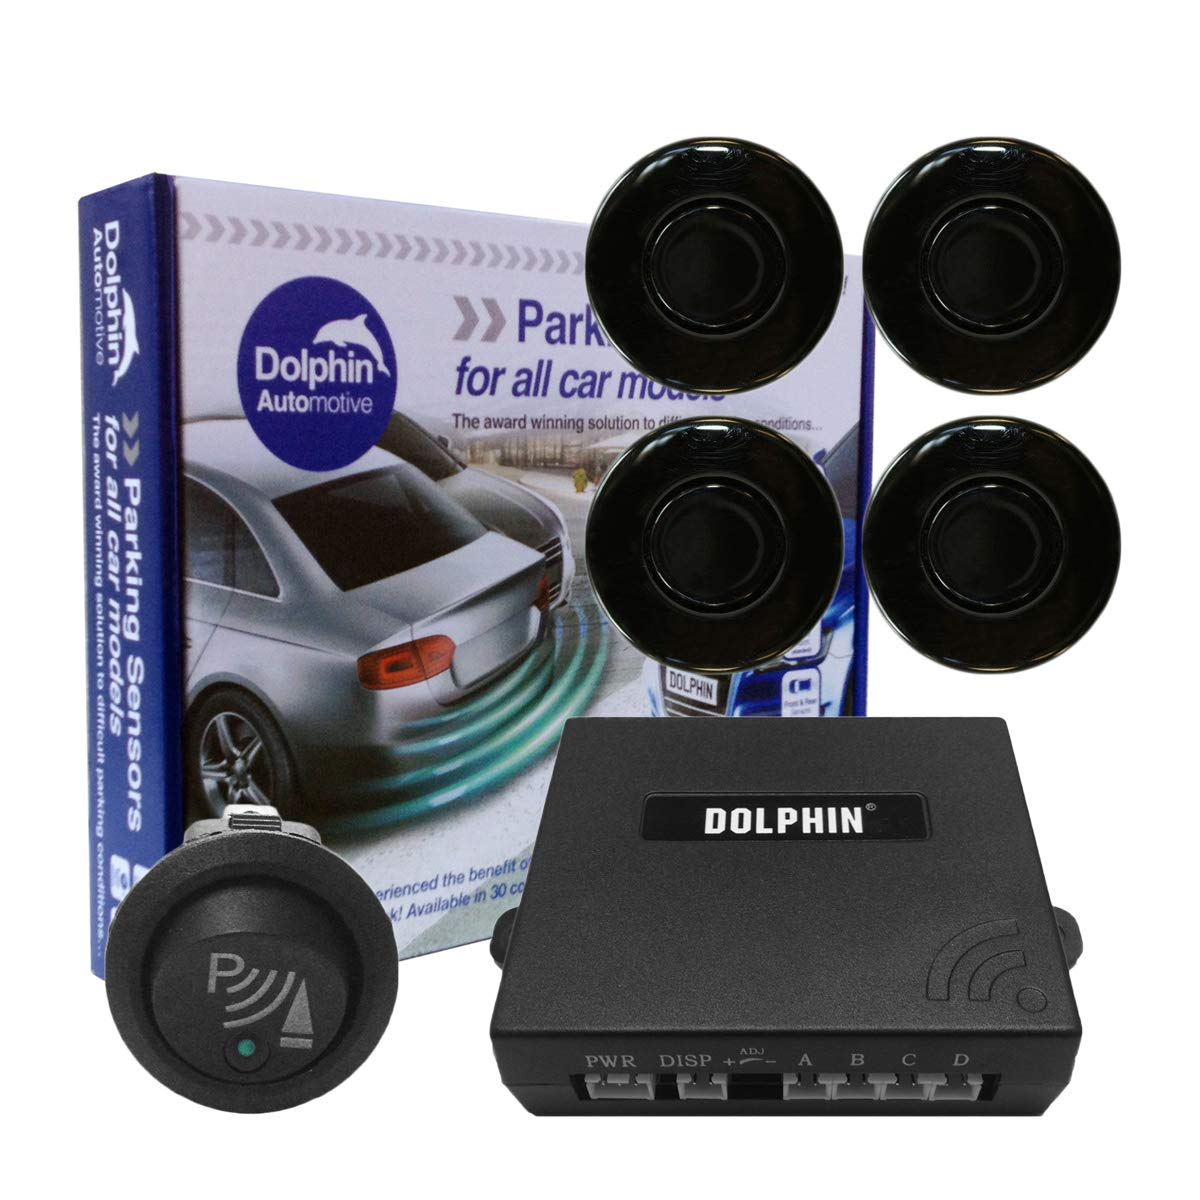 Dolphin Car Van Front Parking Sensors With Longer 6m Leads and Parking Switch in 32 Coloured Options UK Gloss Black